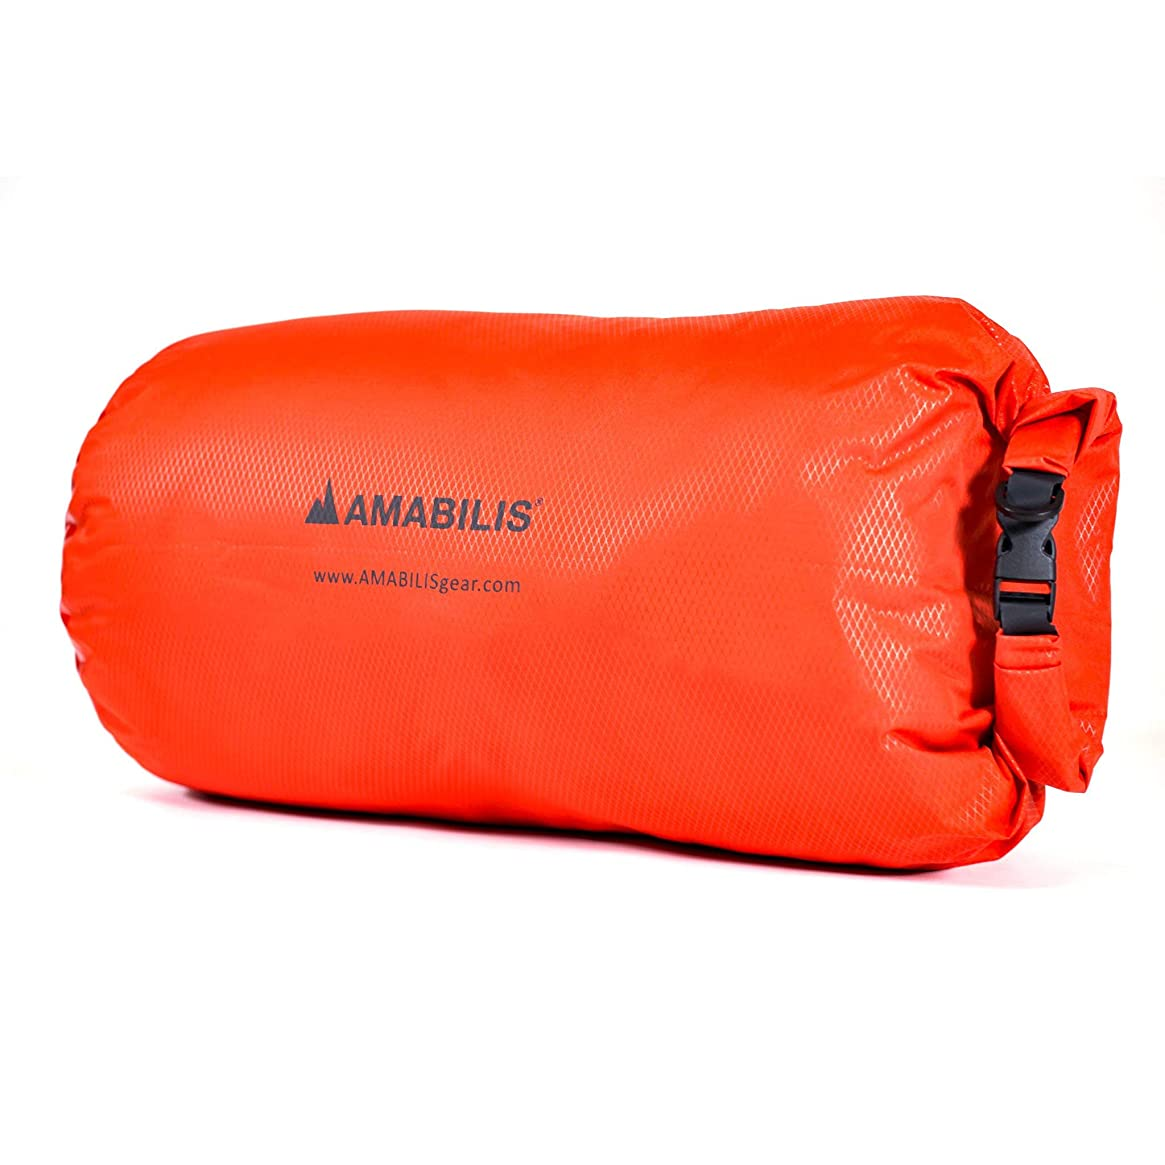 Amabilis Waterproof Dry Bag Liner and Dry Sack Deisgned to Fit The Dave Jr, Duffel Bag 25L - 26